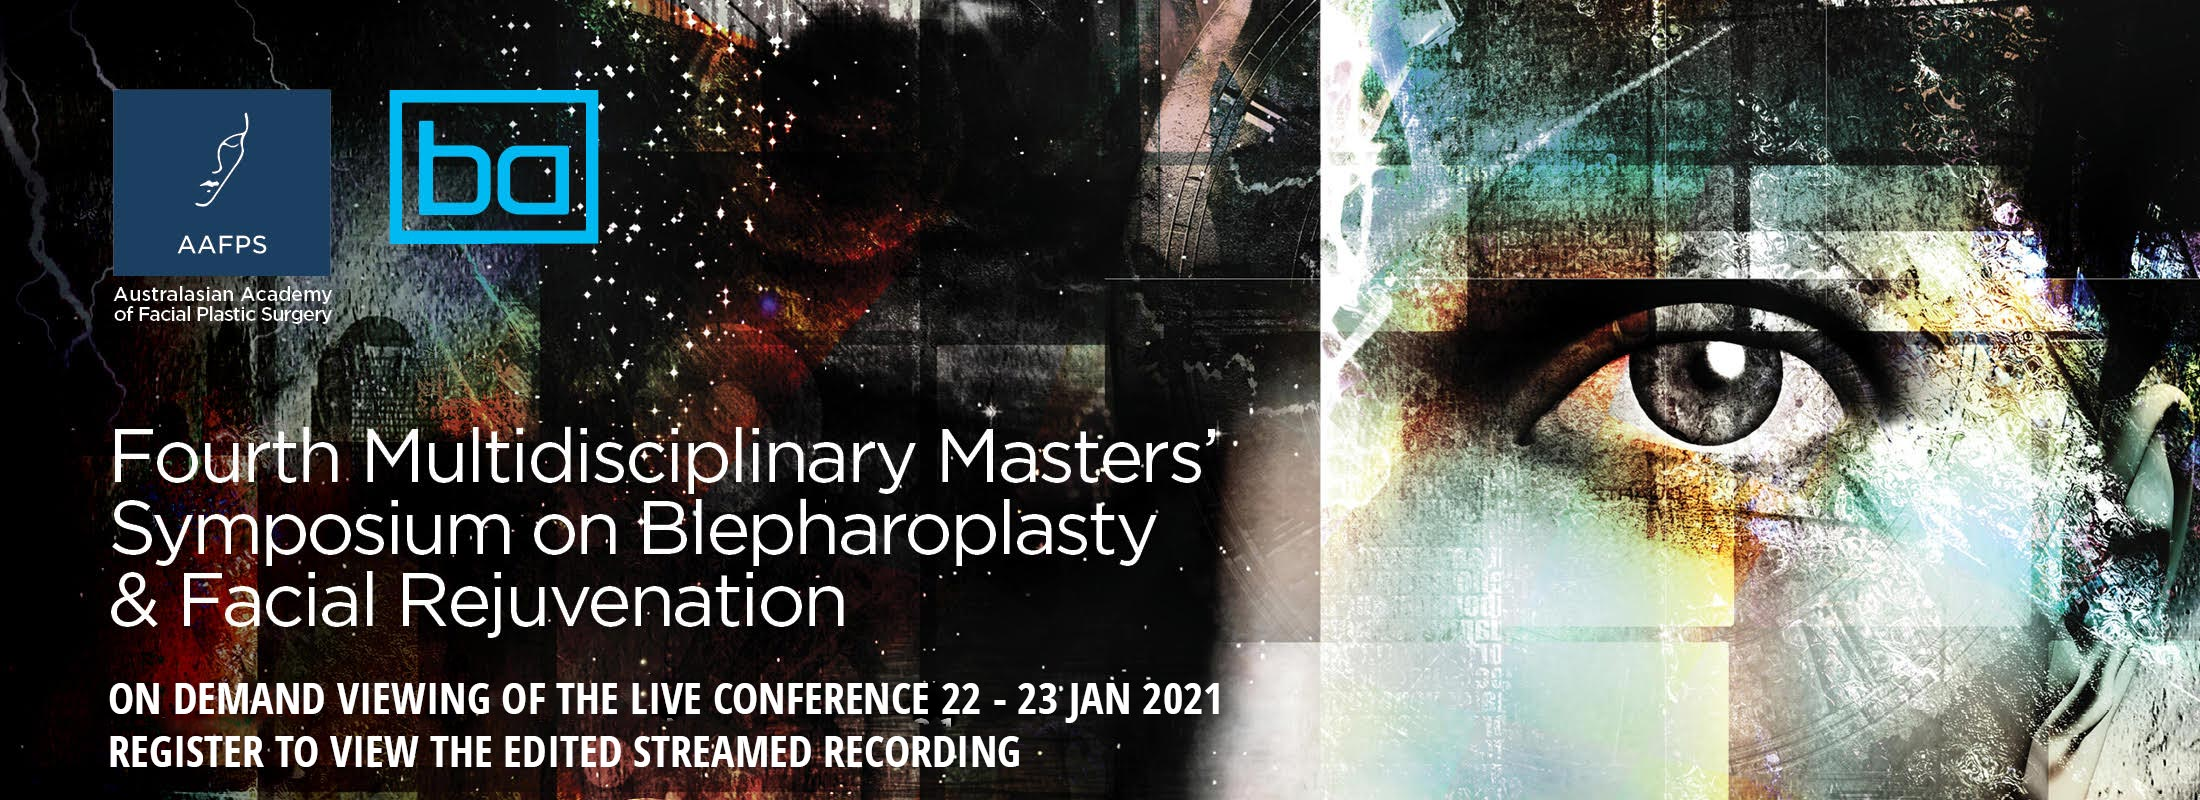 Fourth Multidisciplinary Masters Symposium on Blepharoplasty and Facial Rejuvenation 2021